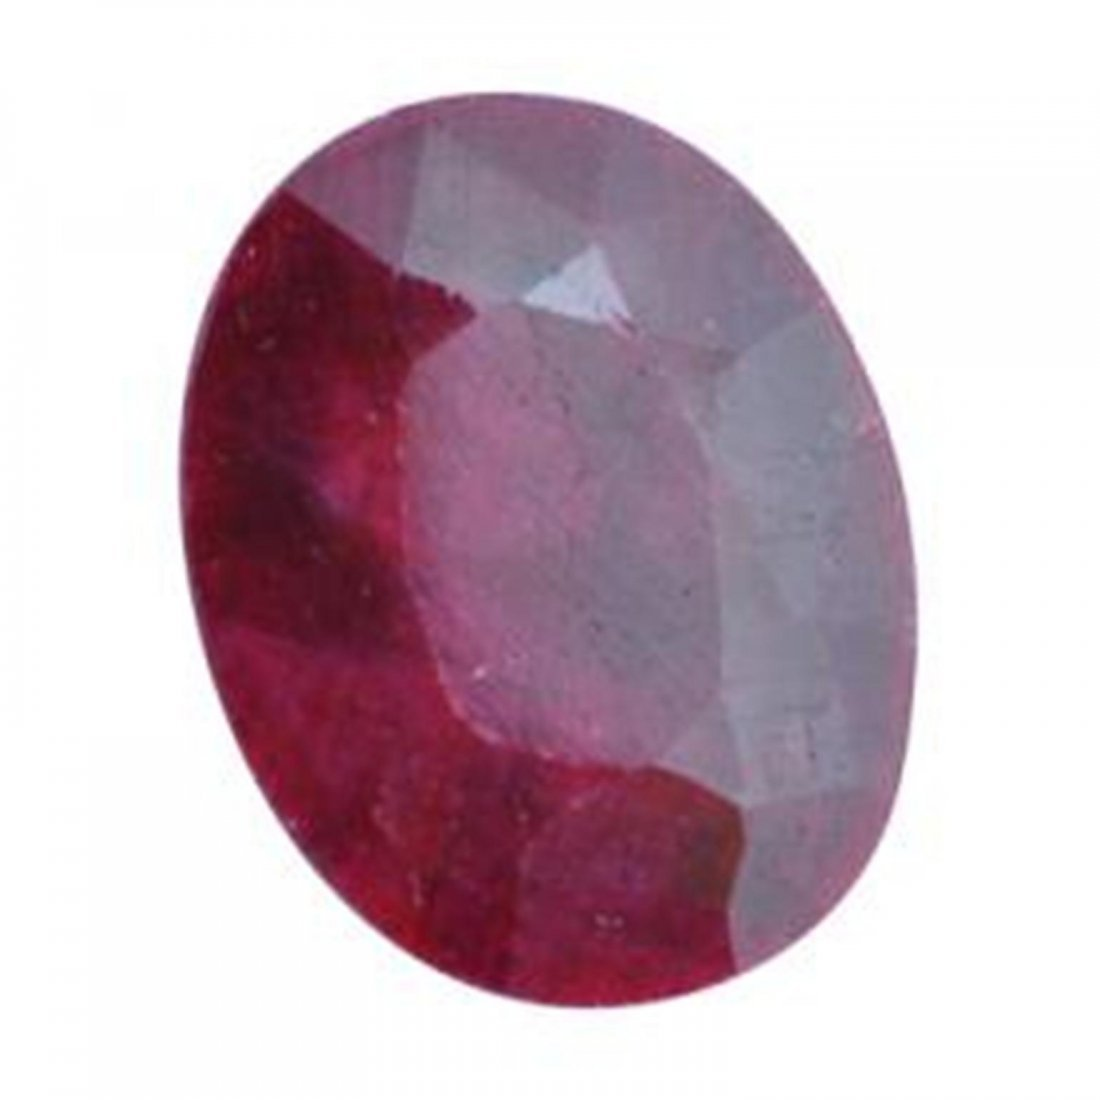 14Q: A 3 ct. Ruby Gemstone